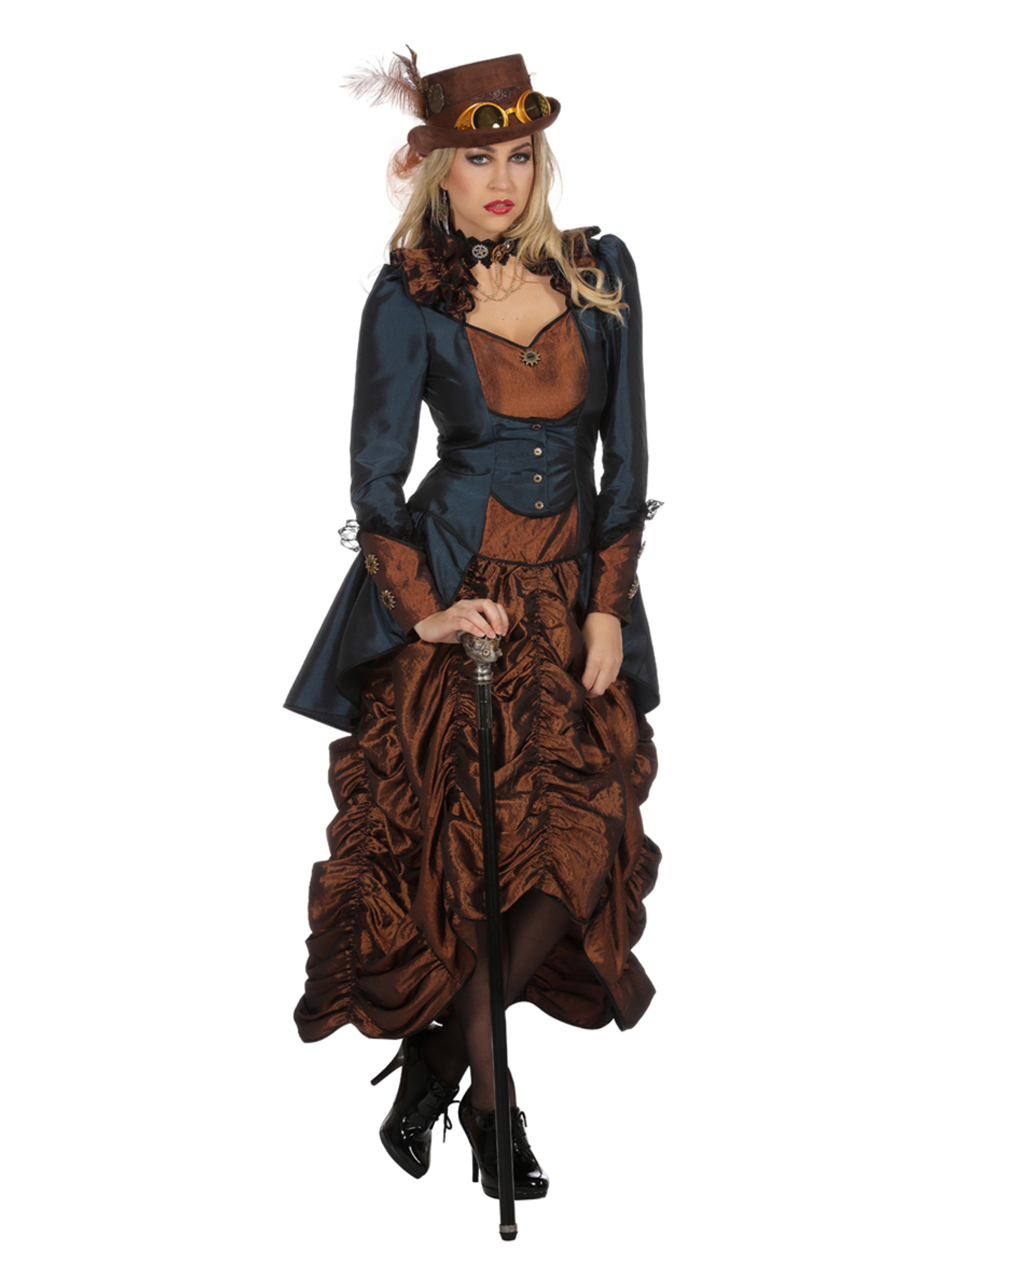 Steampunk Ladies Costume Premium Buy HERE | horror-shop.com